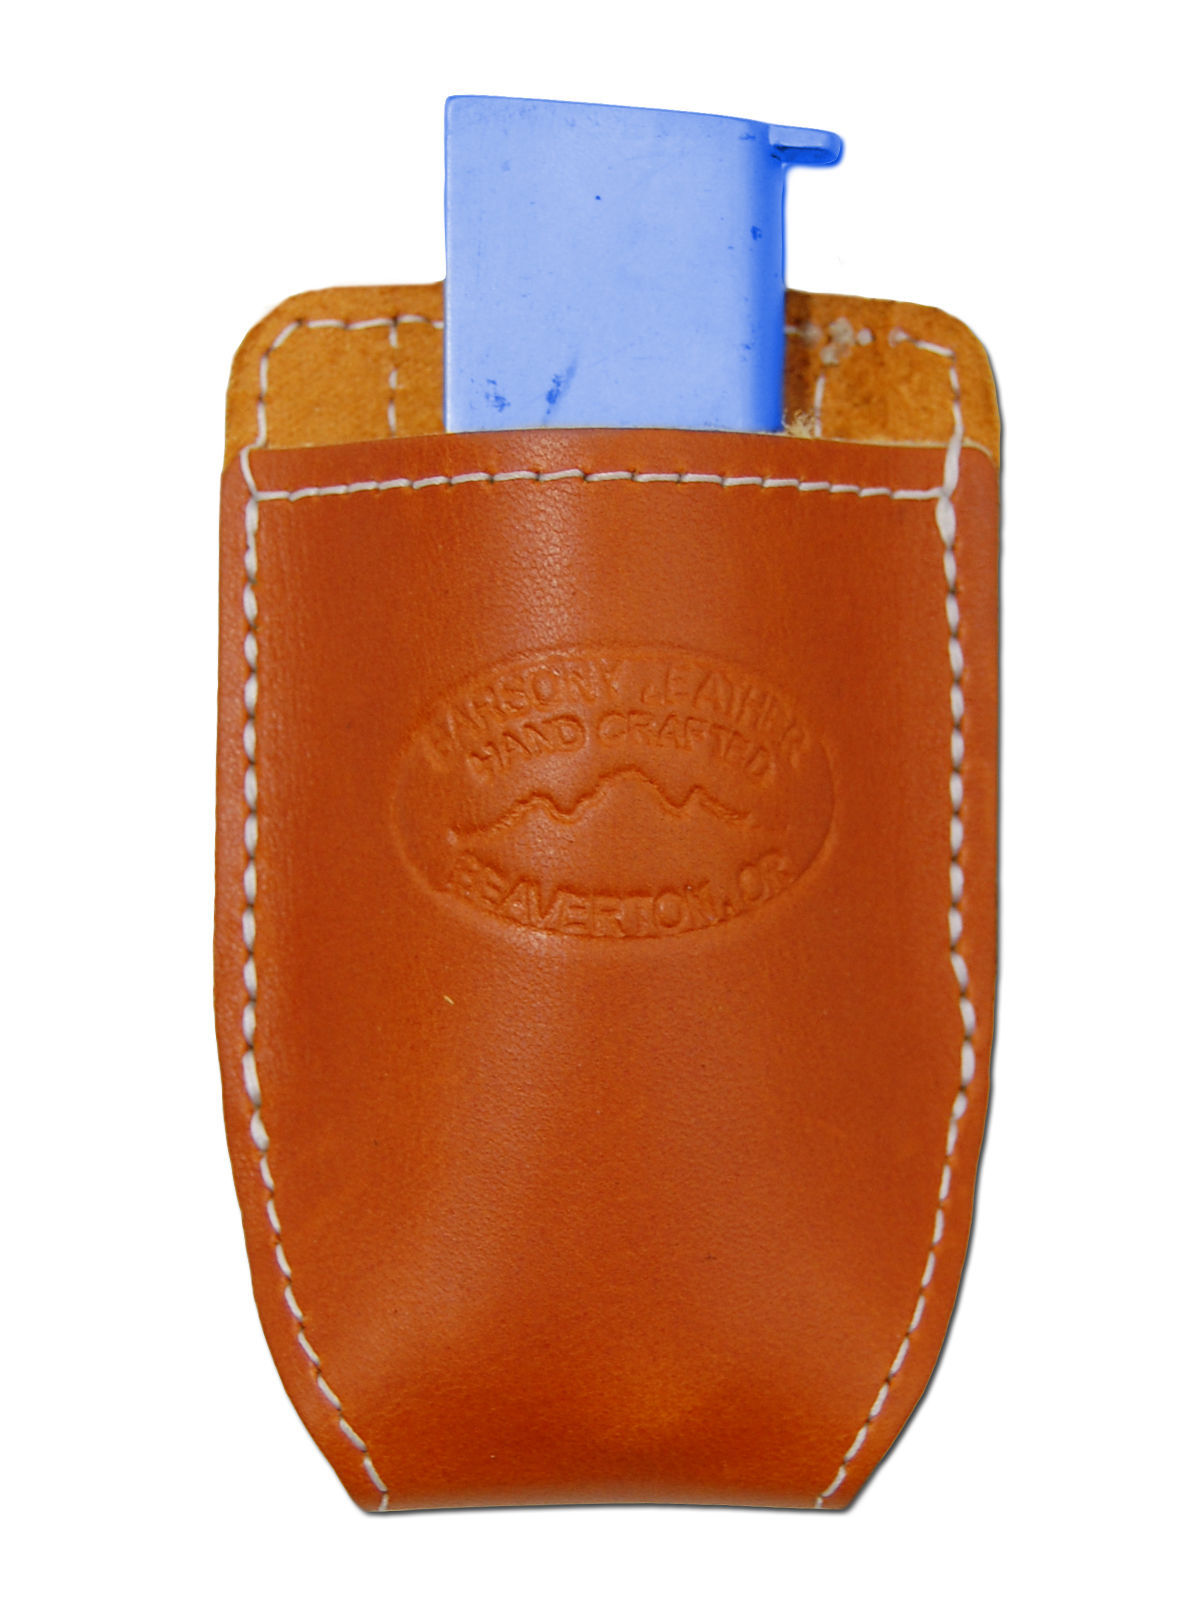 NEW Barsony Tan Leather Magazine Pouch for Ruger, Kel-Tec Mini/Pocket 22 25 380